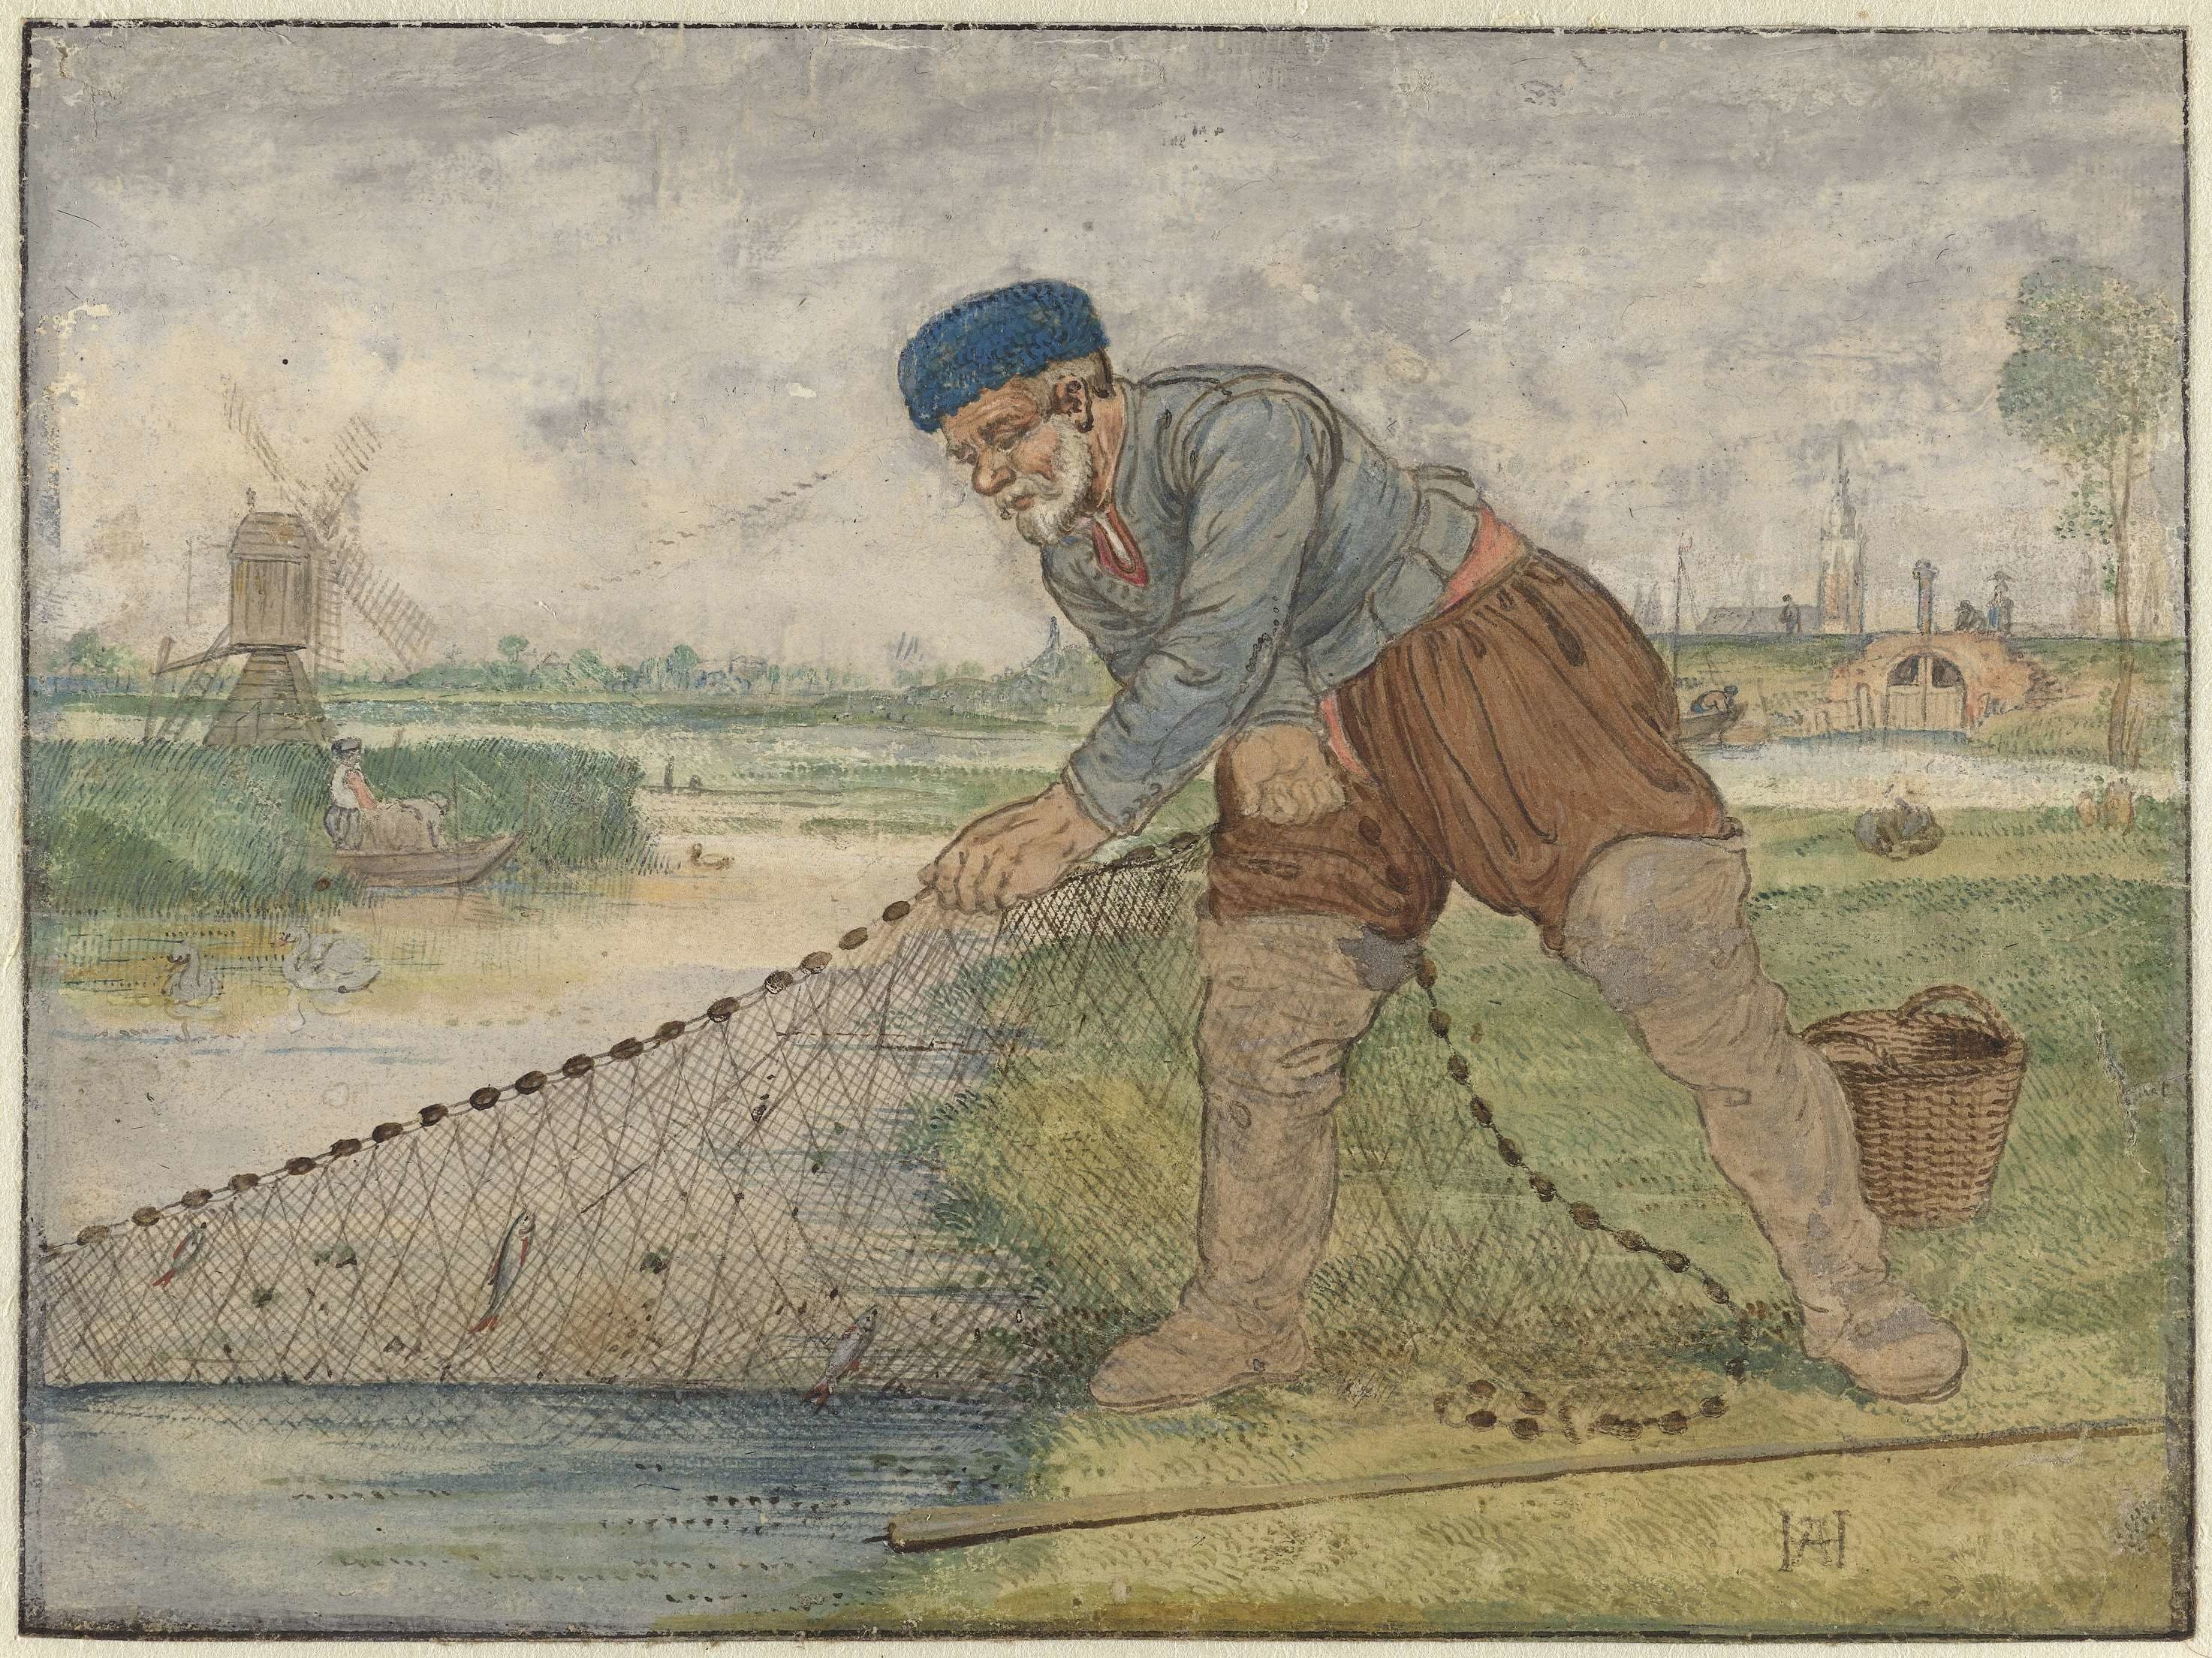 A historical watercolour painting of a fisherman hauling a fishing net out of marshy land, with a windmill visible to the left and a church in the distance at the right. Swans, ducks, and people in boats can be seen in the background.